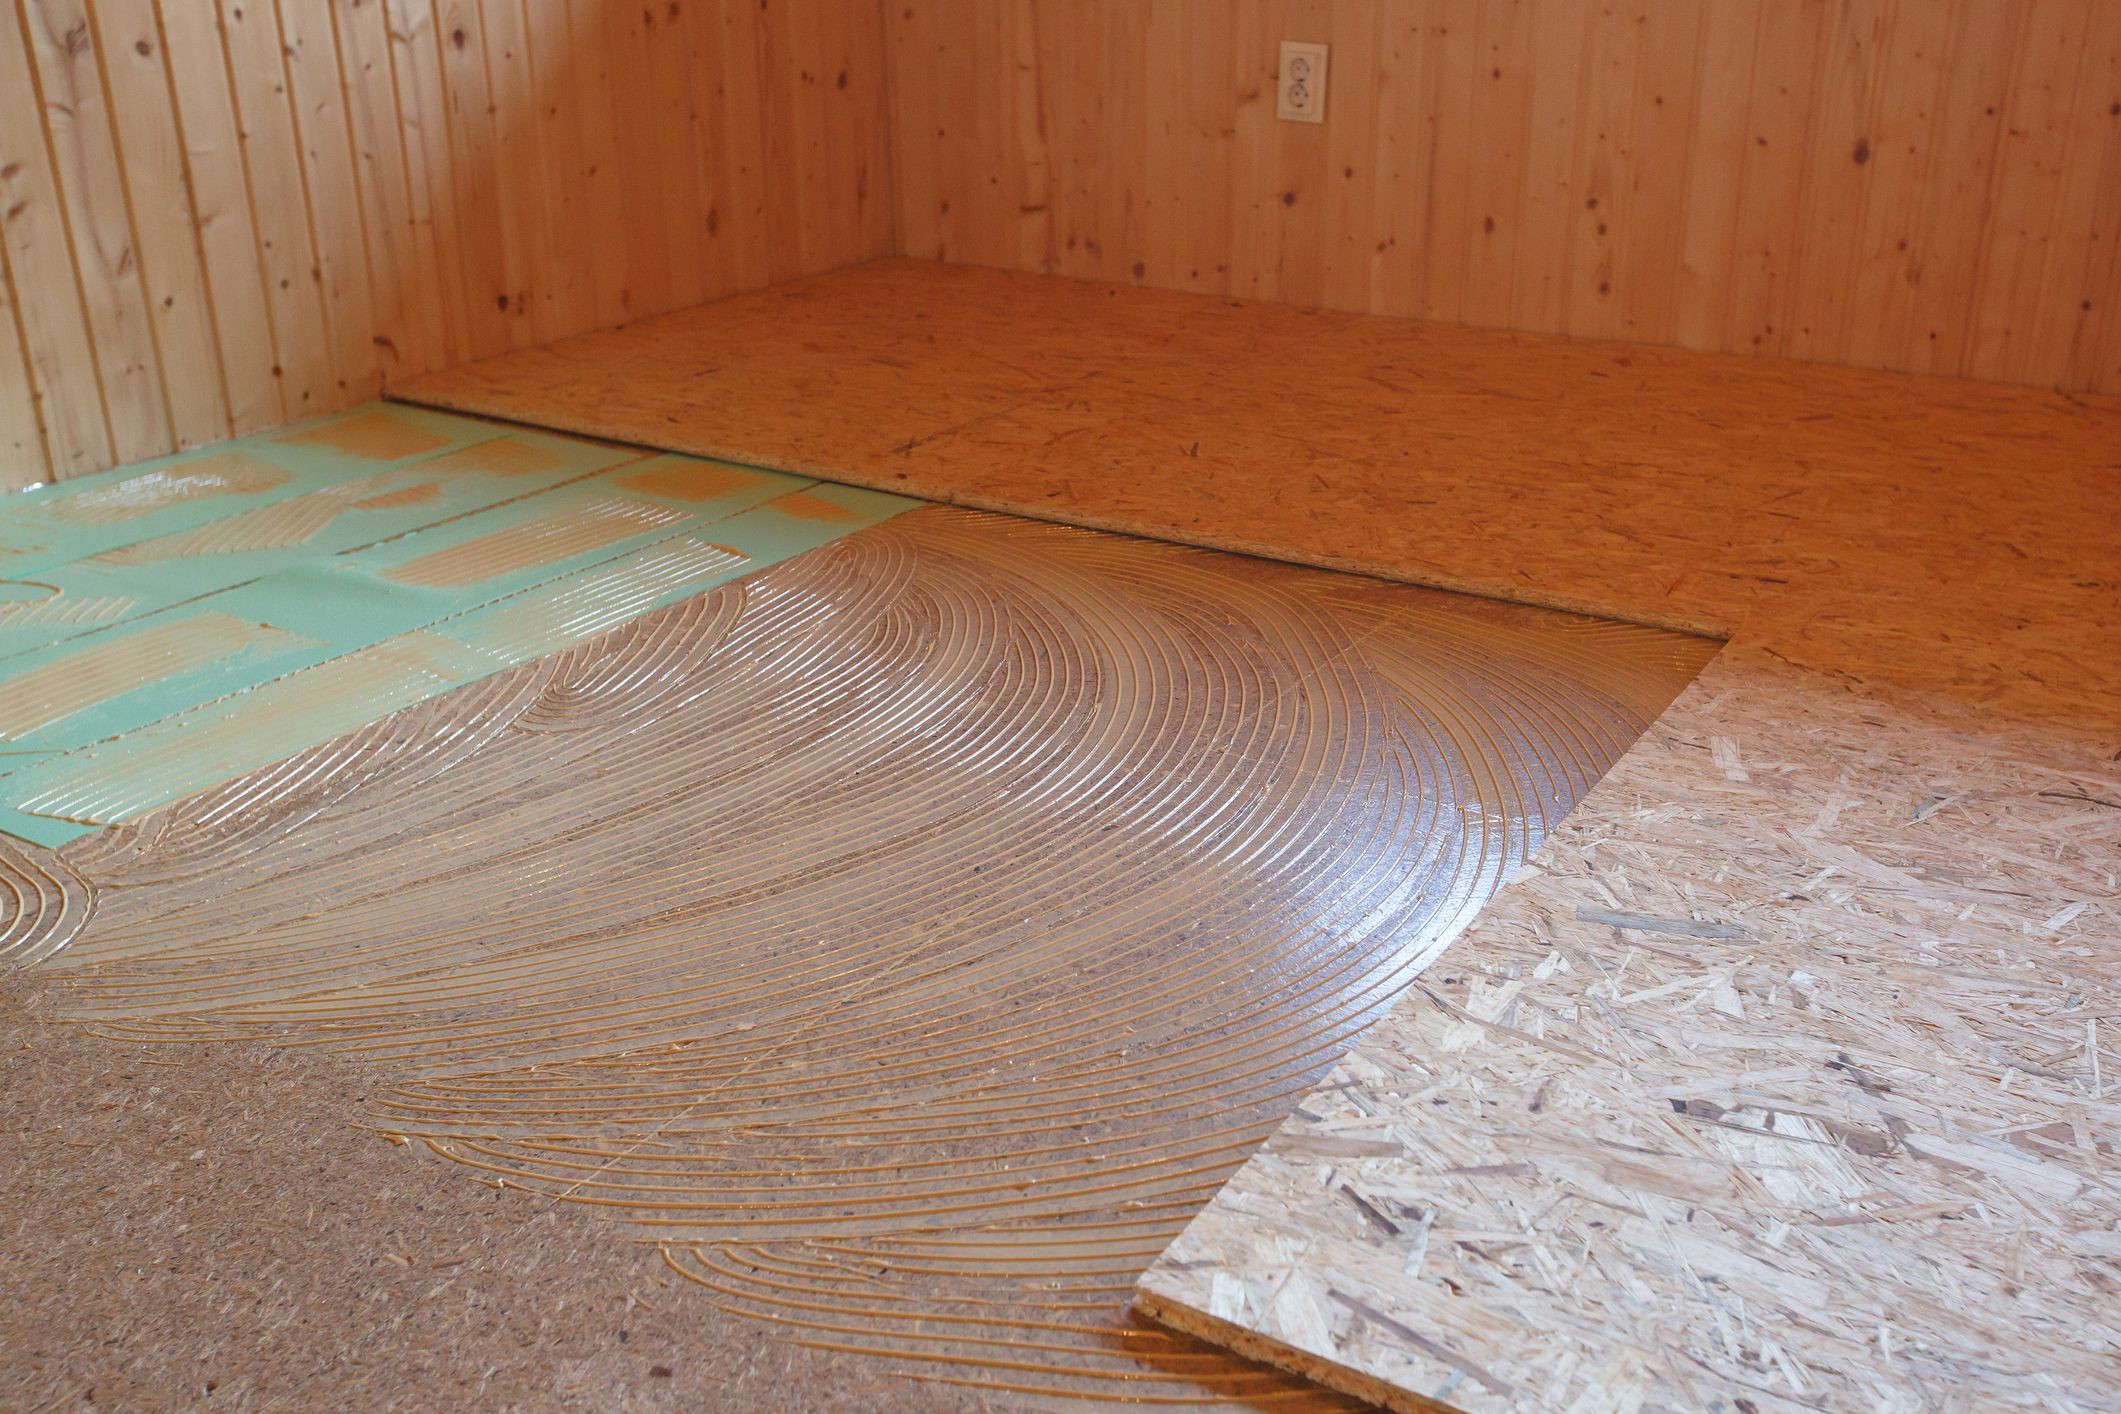 how much does sanding hardwood floors cost of types of subfloor materials in construction projects regarding gettyimages 892047030 5af5f46fc064710036eebd22